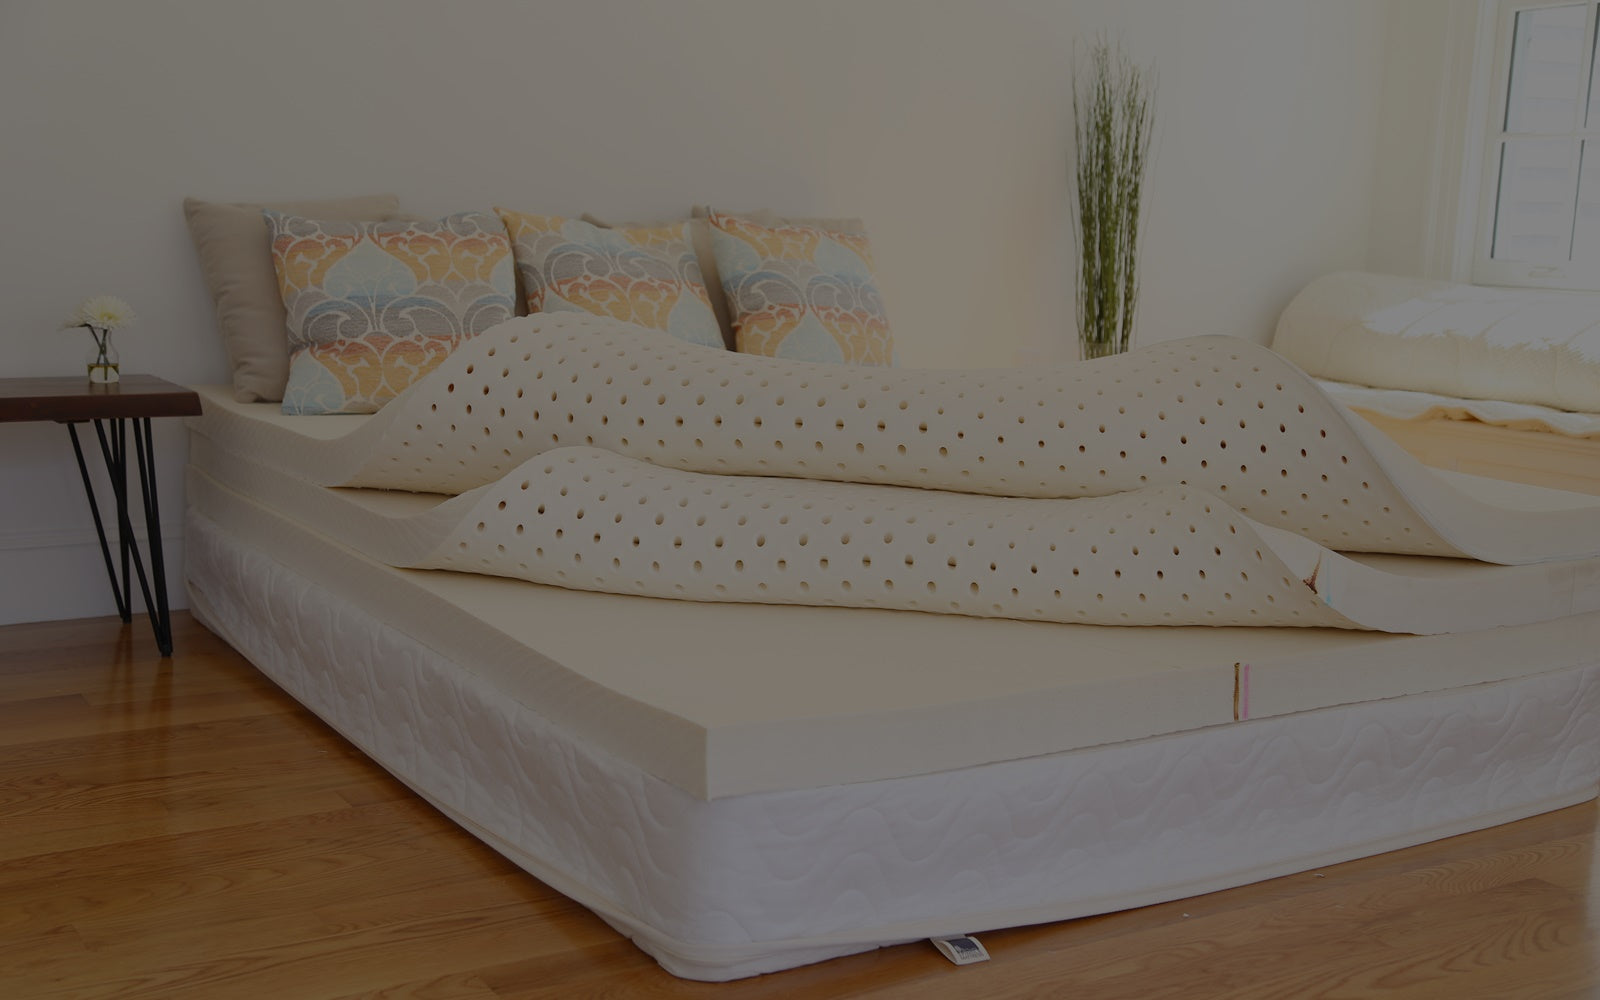 Putting natural latex layers inside of an organic cotton cover to build a Spindle mattress